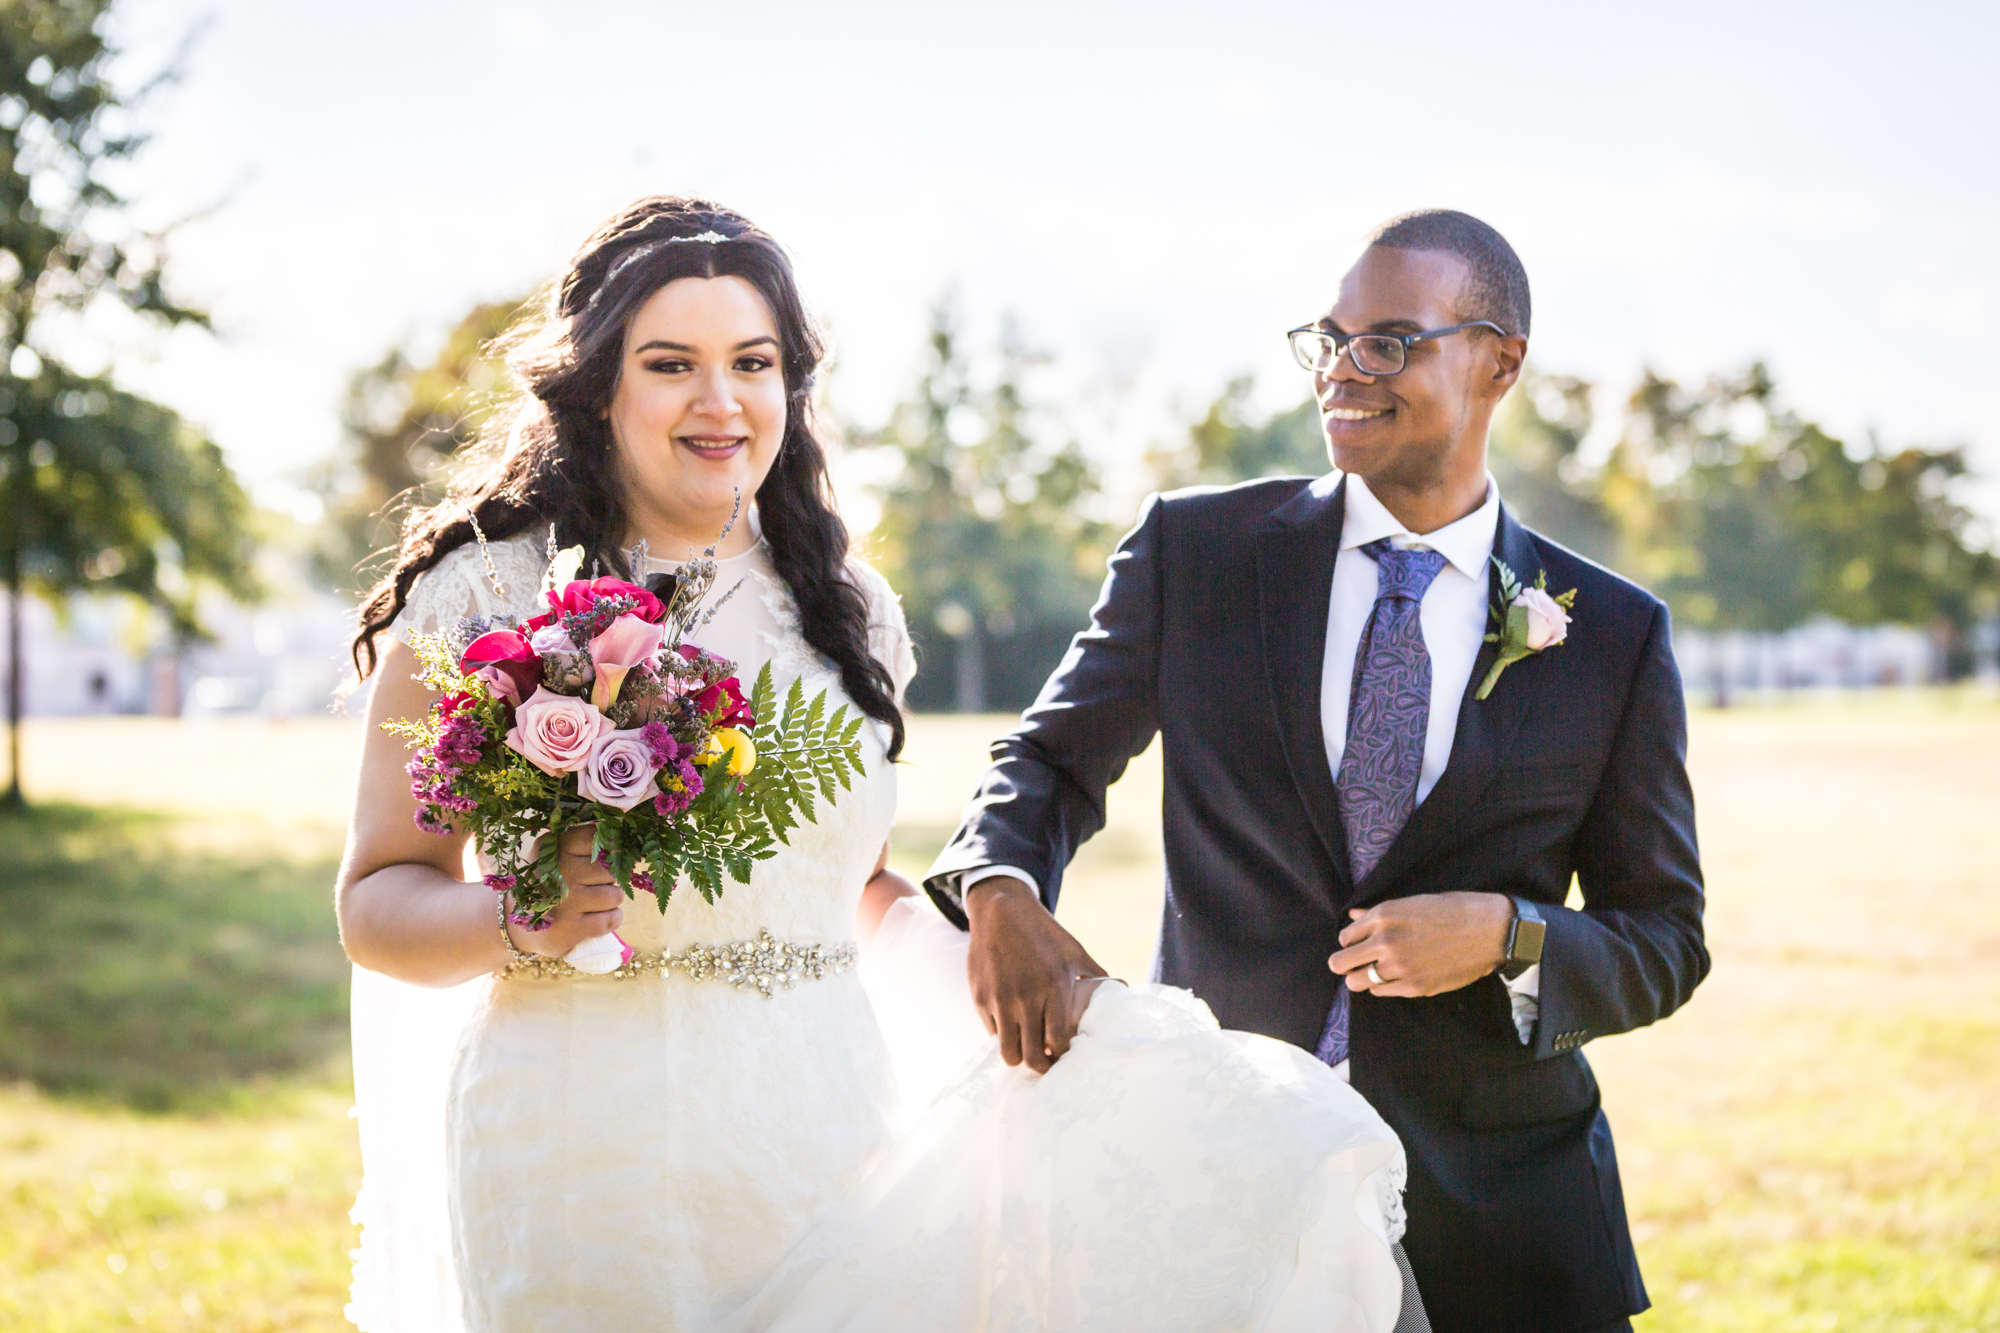 Portrait of bride and groom at park for an article on wedding photography timeline tips